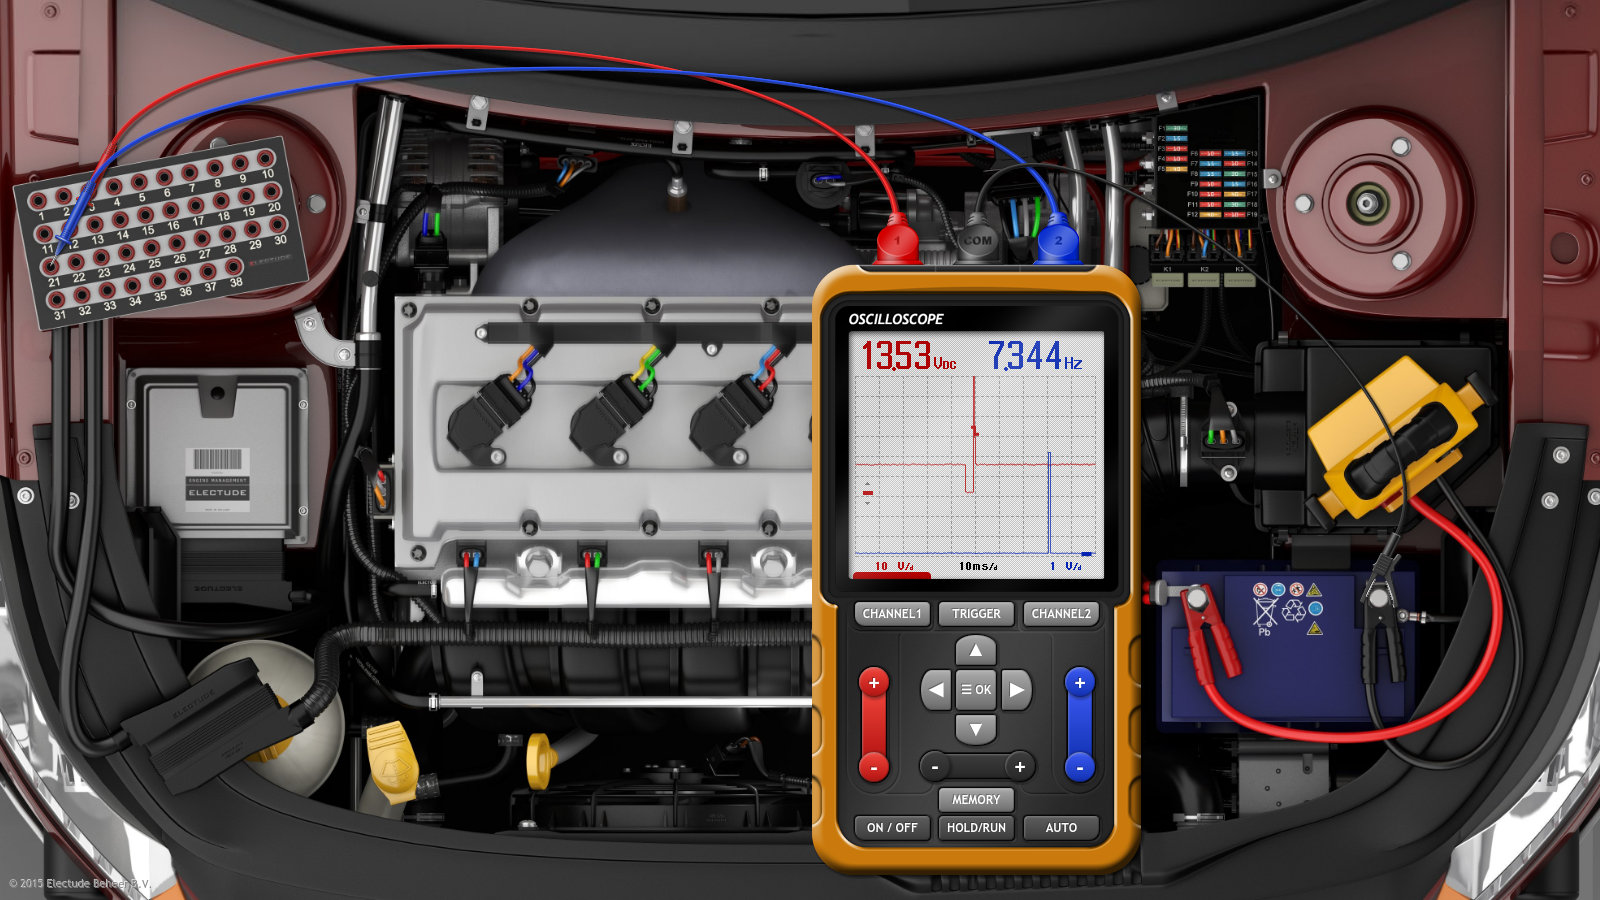 Electude Simulator Challenge Troubleshooting Electric Motor Control Circuits Wiring Simulation